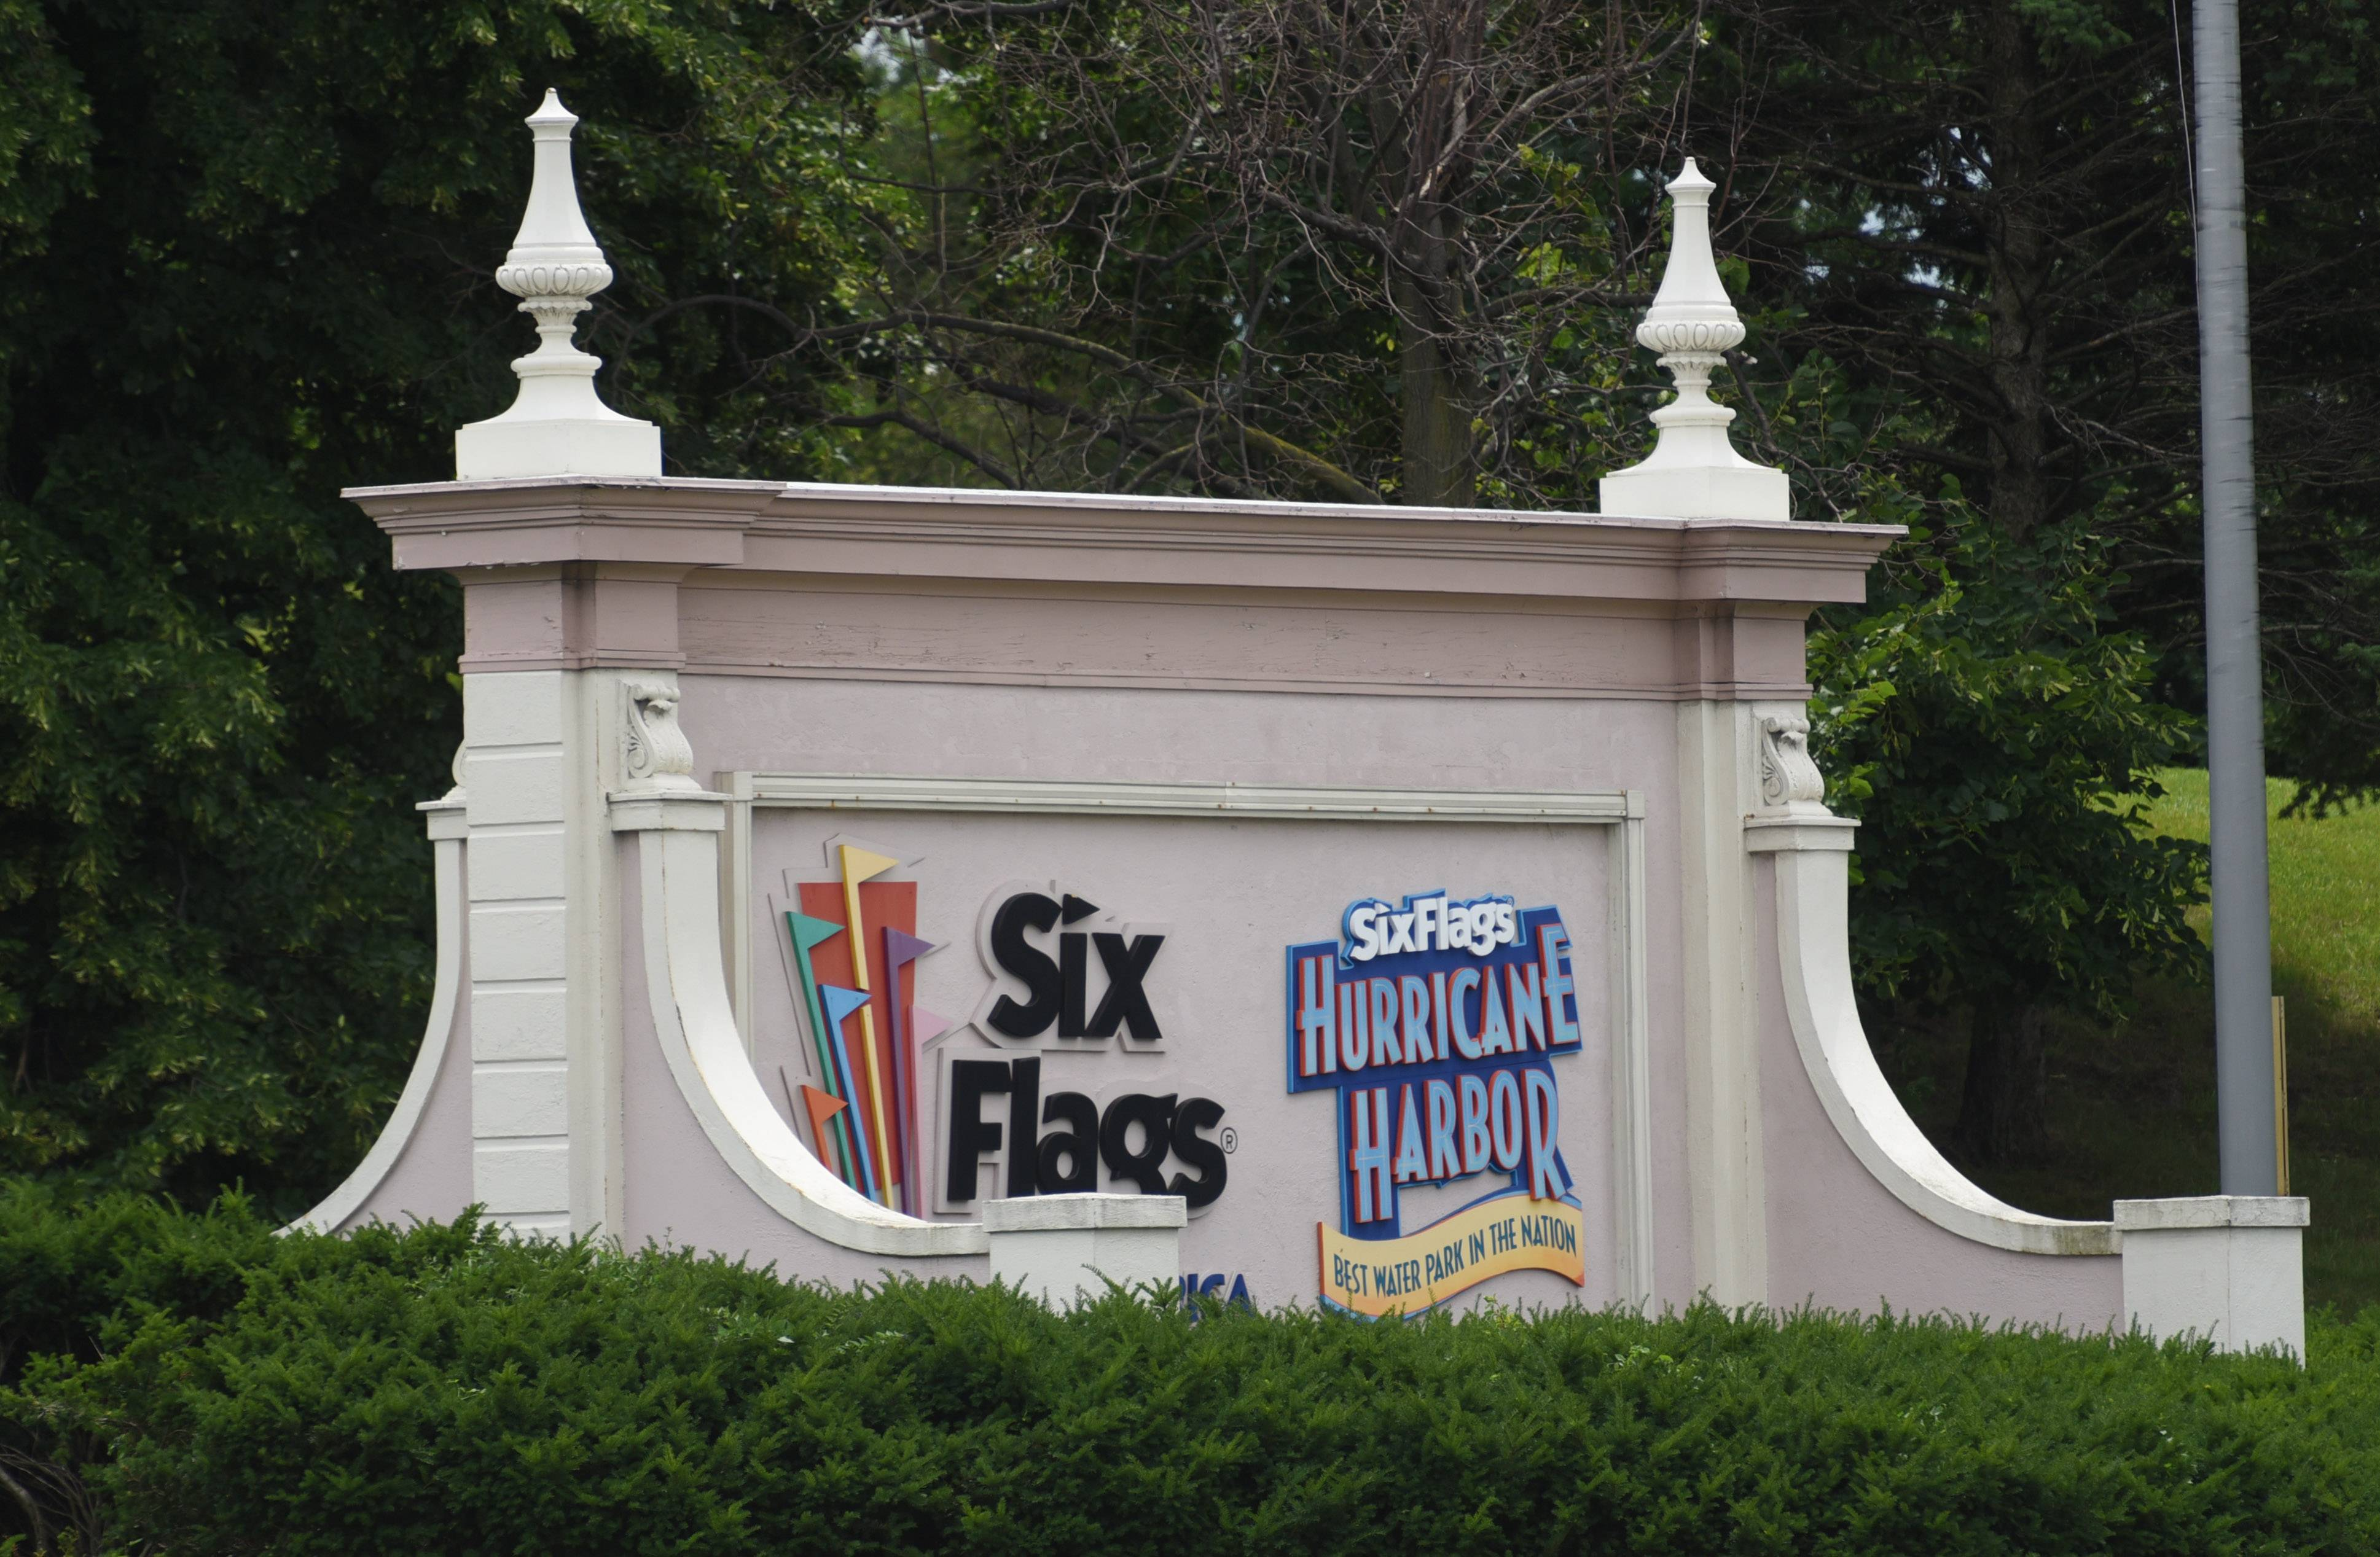 In a ruling hailed by privacy rights groups, Illinois Supreme Court justices issued an opinion Friday that allows a suburban mom to continue a lawsuit against Six Flags Great America over its use of fingerprints for season pass holder entry.